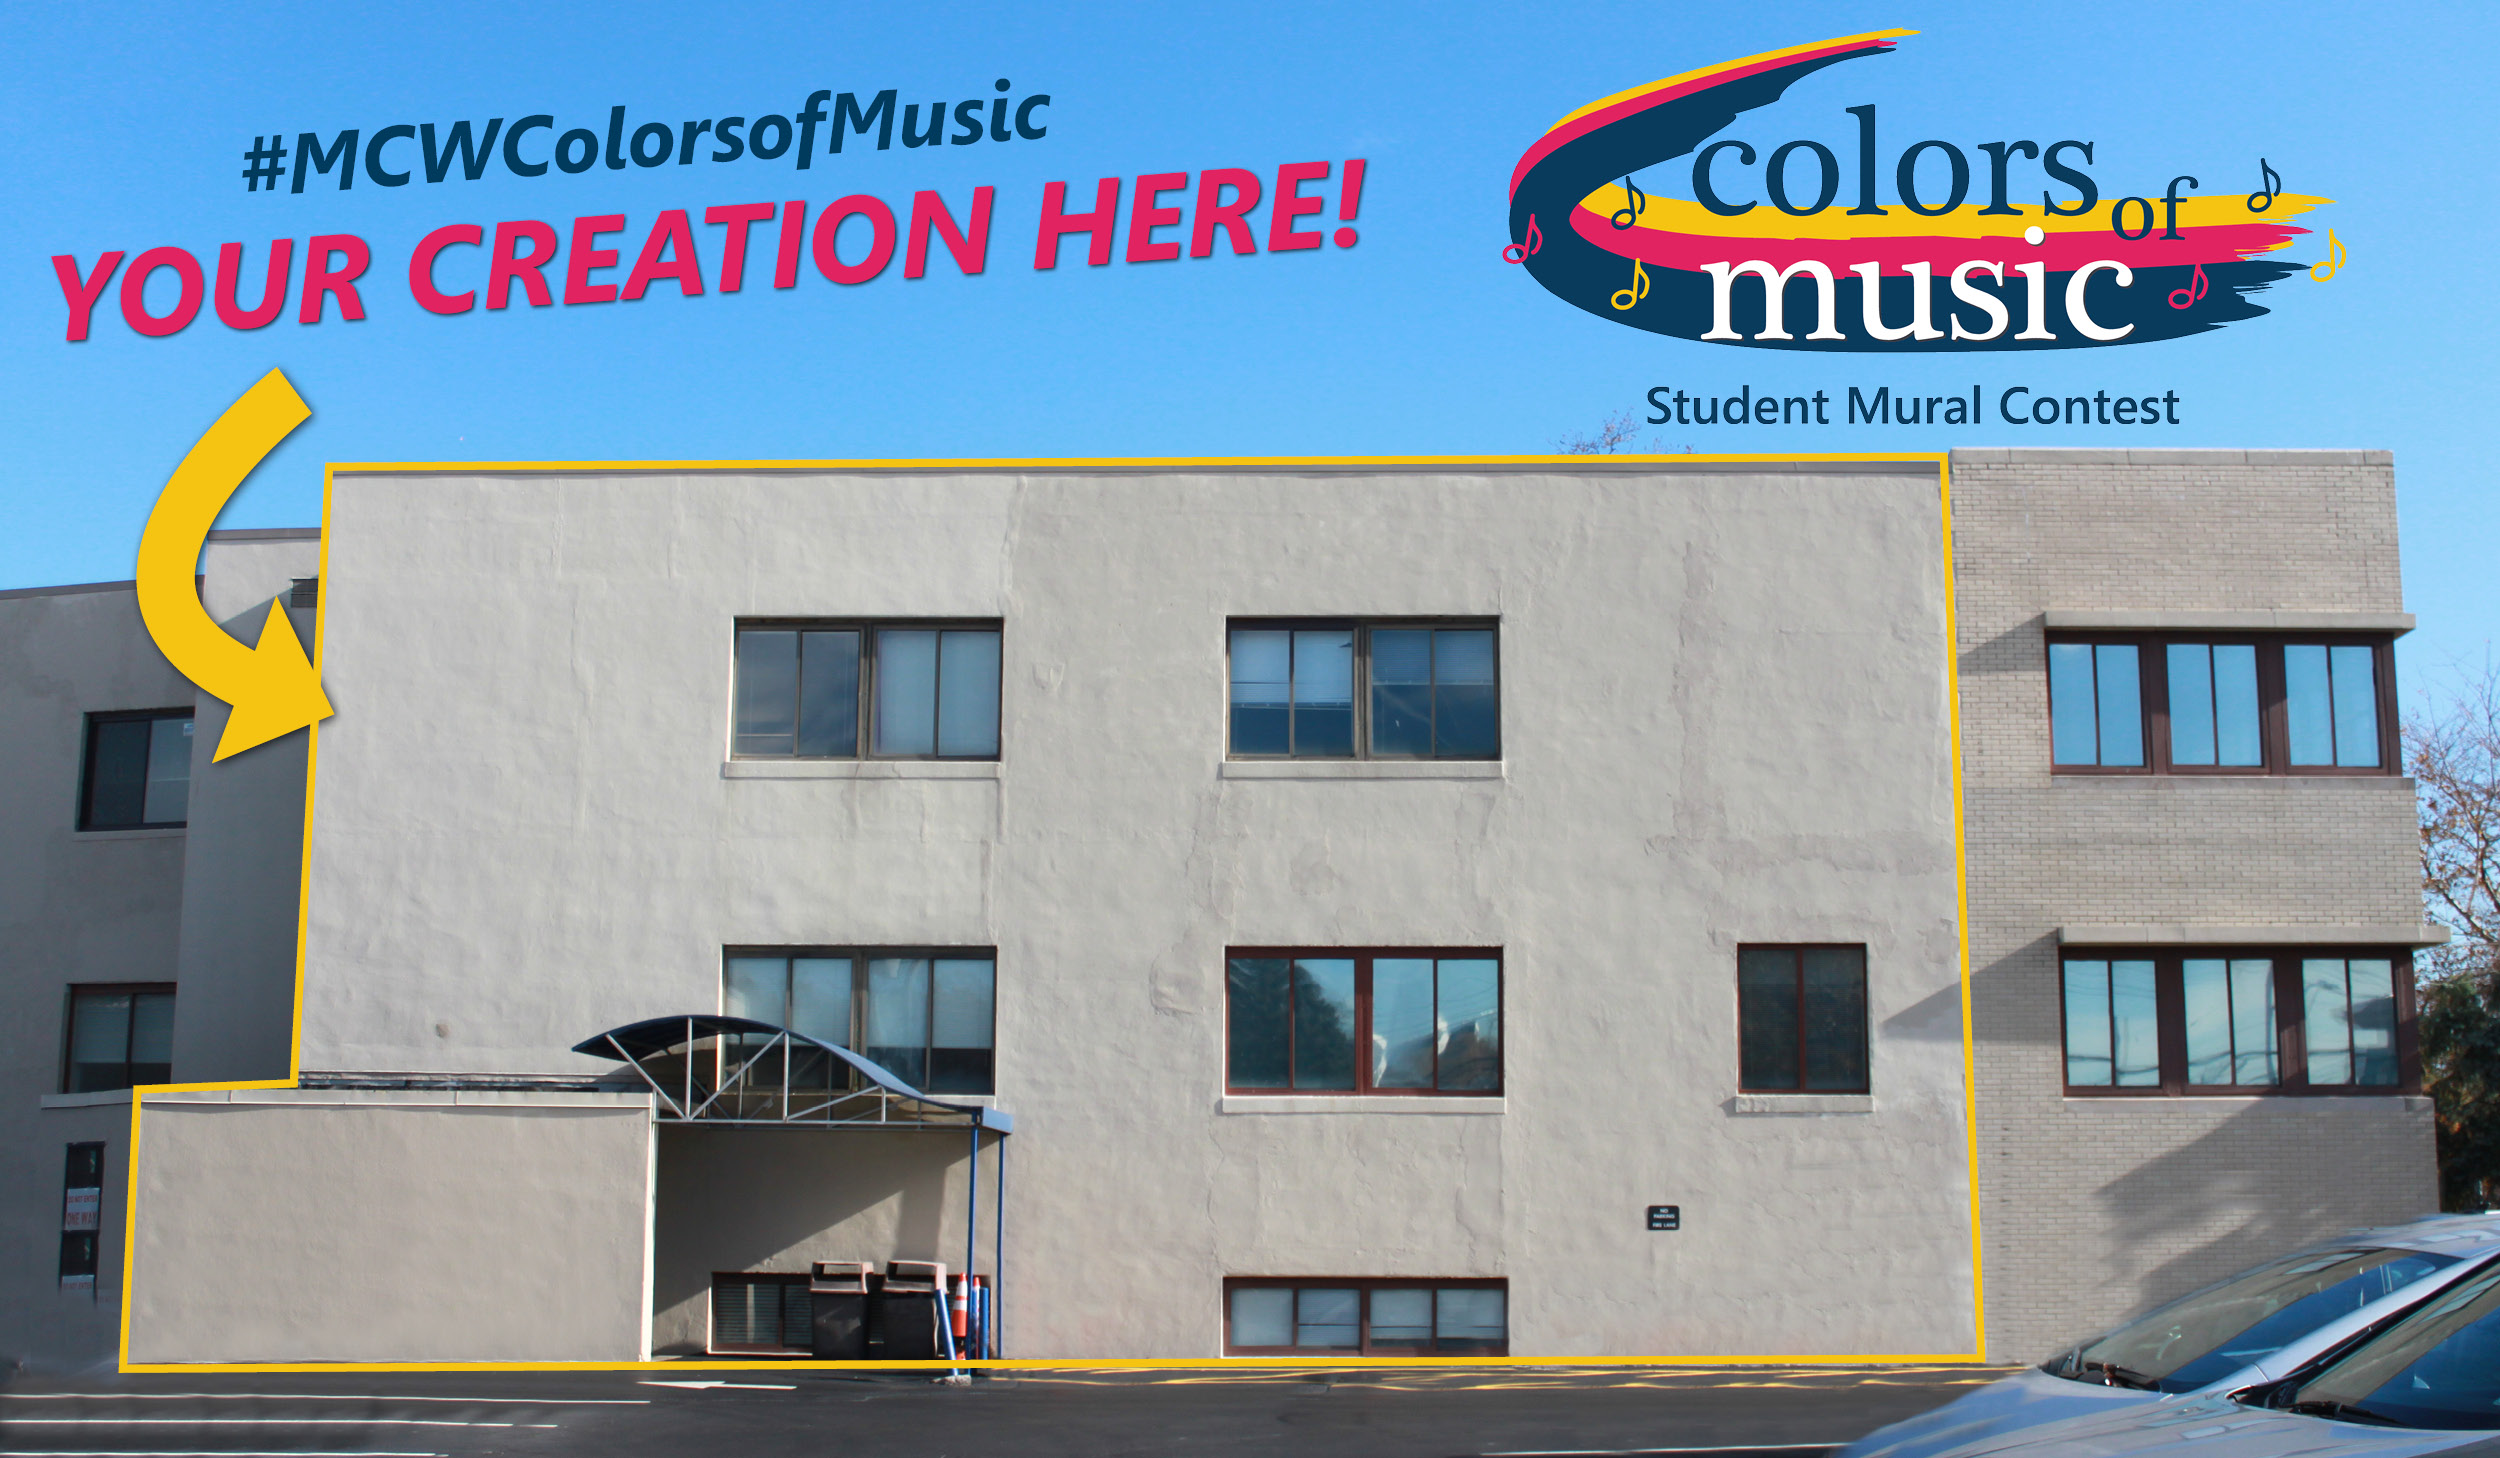 Music Conservatory of Westchester's 'Colors of Music' Student Mural Contest Accepting Submissions